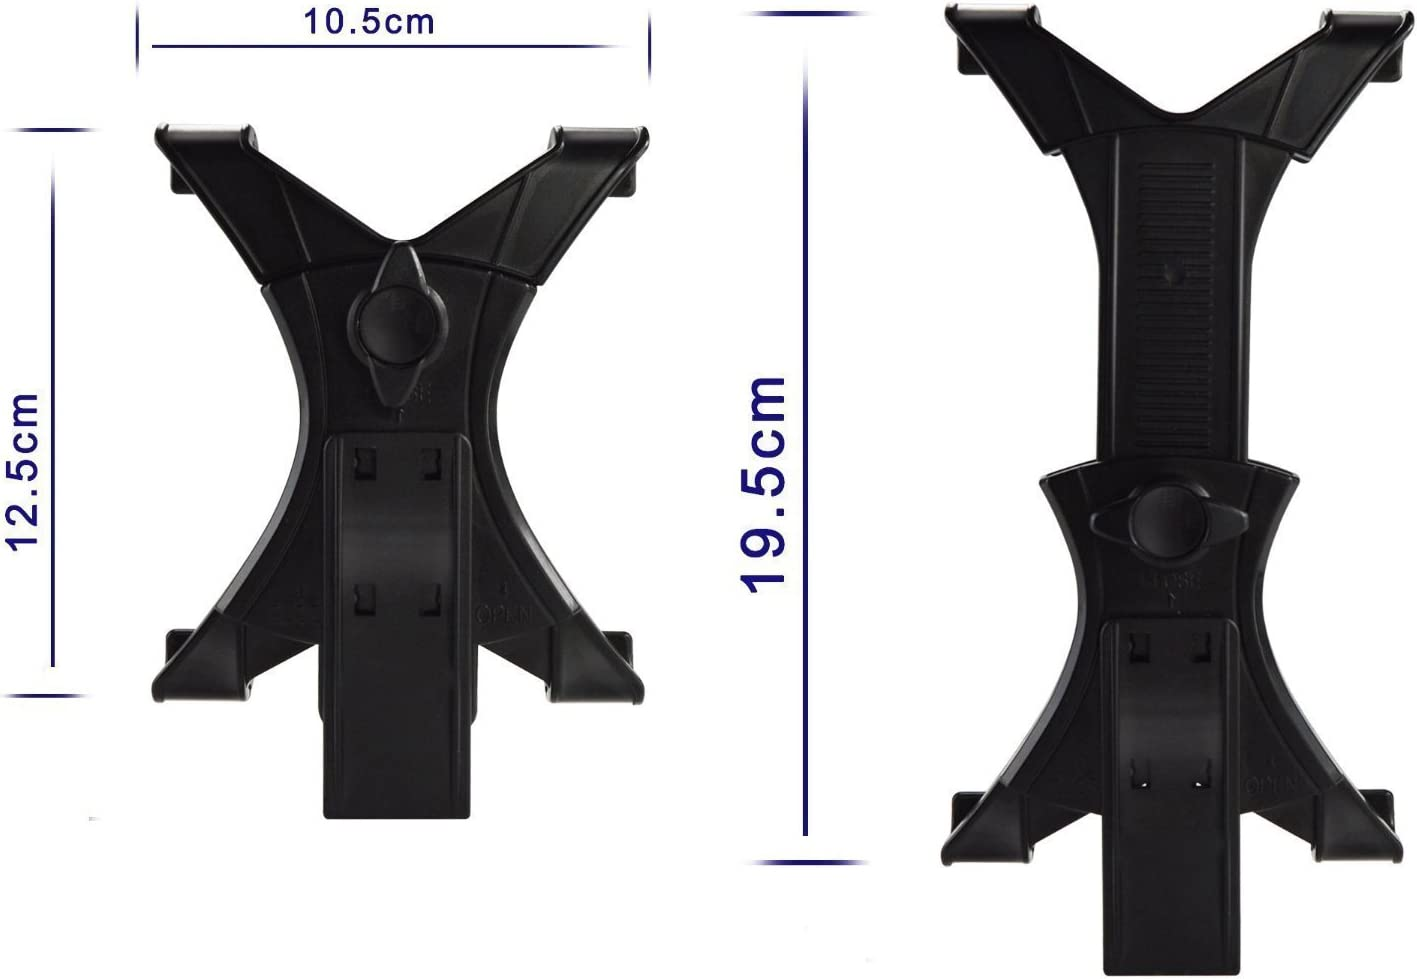 Tablet/&Phone Mount,PEYOU Compatible for iPad Universal Tablet Tripod Adapter Cell Phone Mount Holder Clamp Compatible for iPad Air Mini,Compatible for iPhone XS Max XR X 8 7 6 Plus,Galaxy S9 S8 Plus